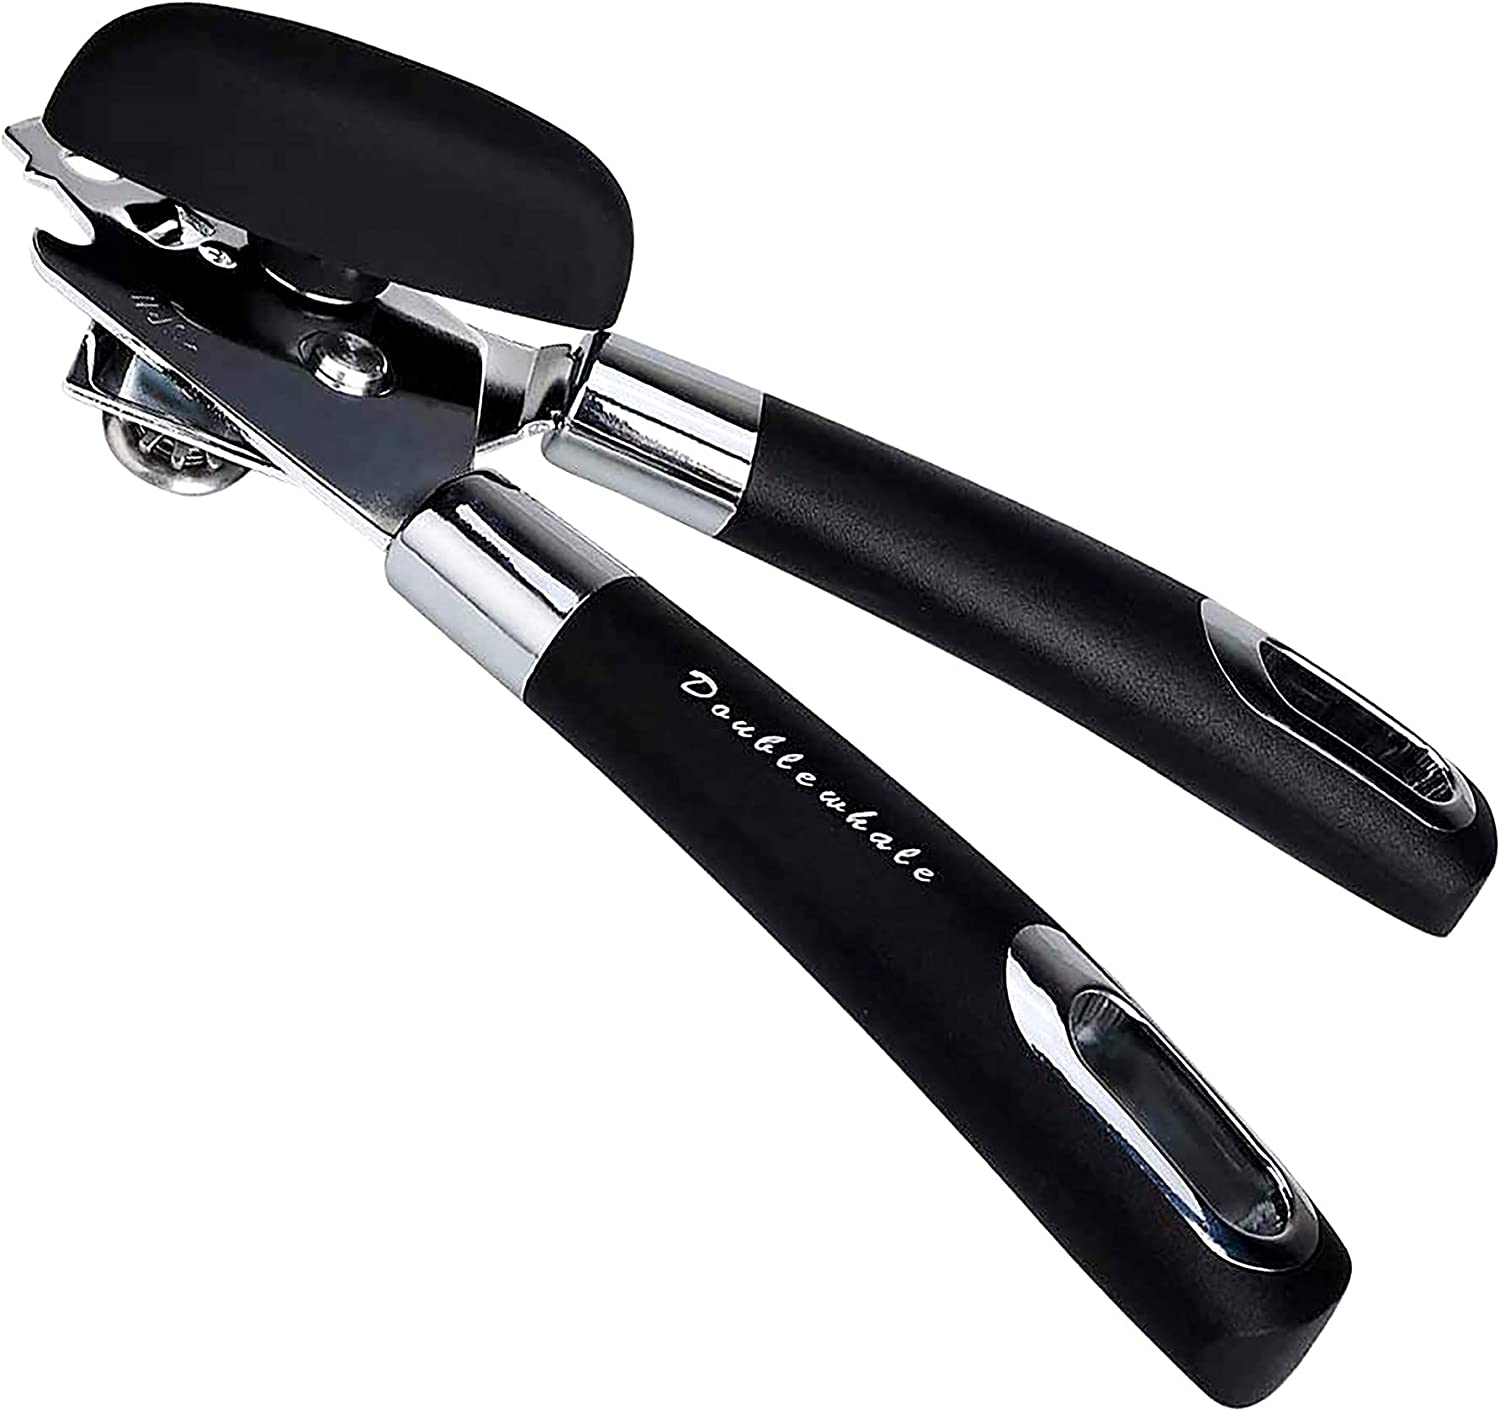 Grips Manual Deluxe Can Opener Stainless steel With thick rubberized handle